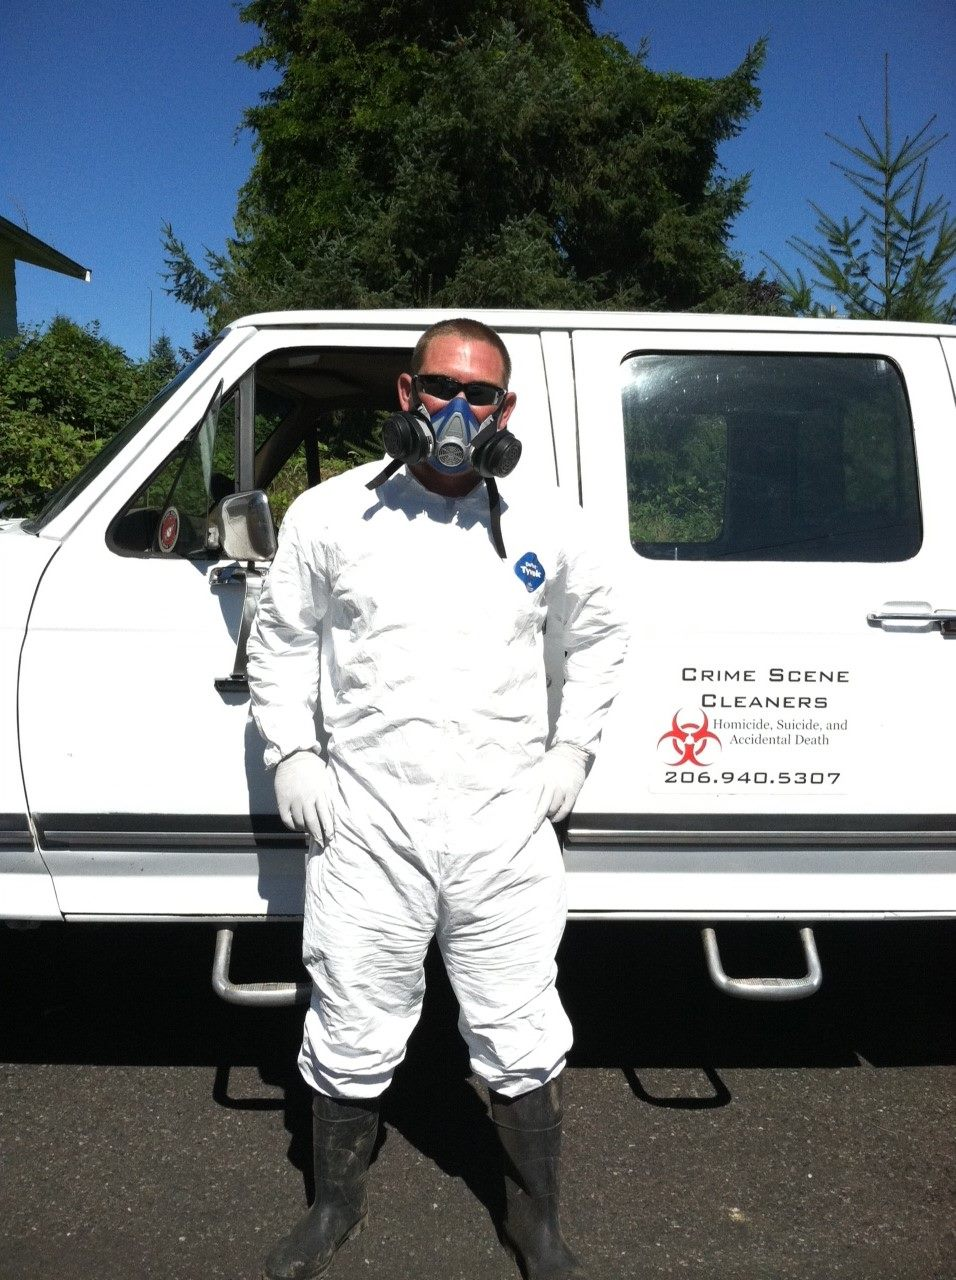 Crime Scene Cleaners NW, professional trauma cleaning services